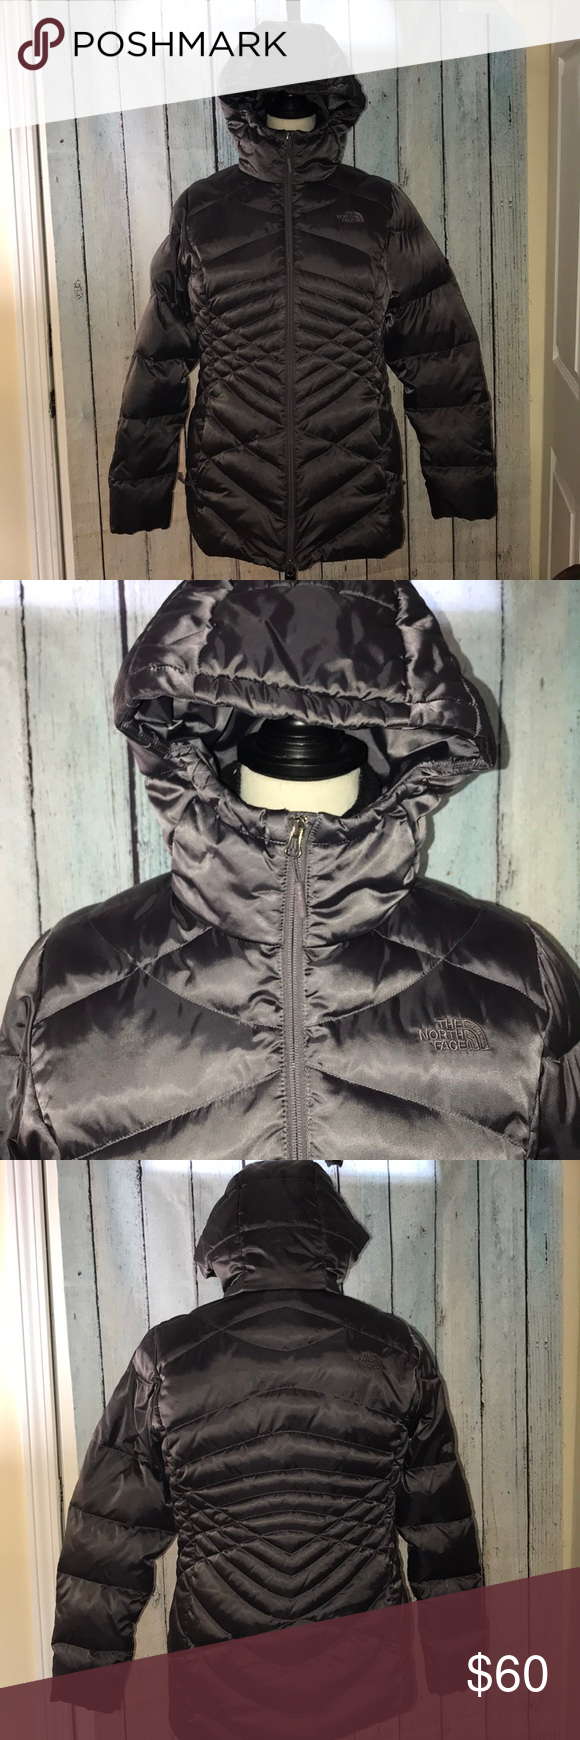 565949bb9 Large womens North Face Parka with hood eggplant The North Face ...